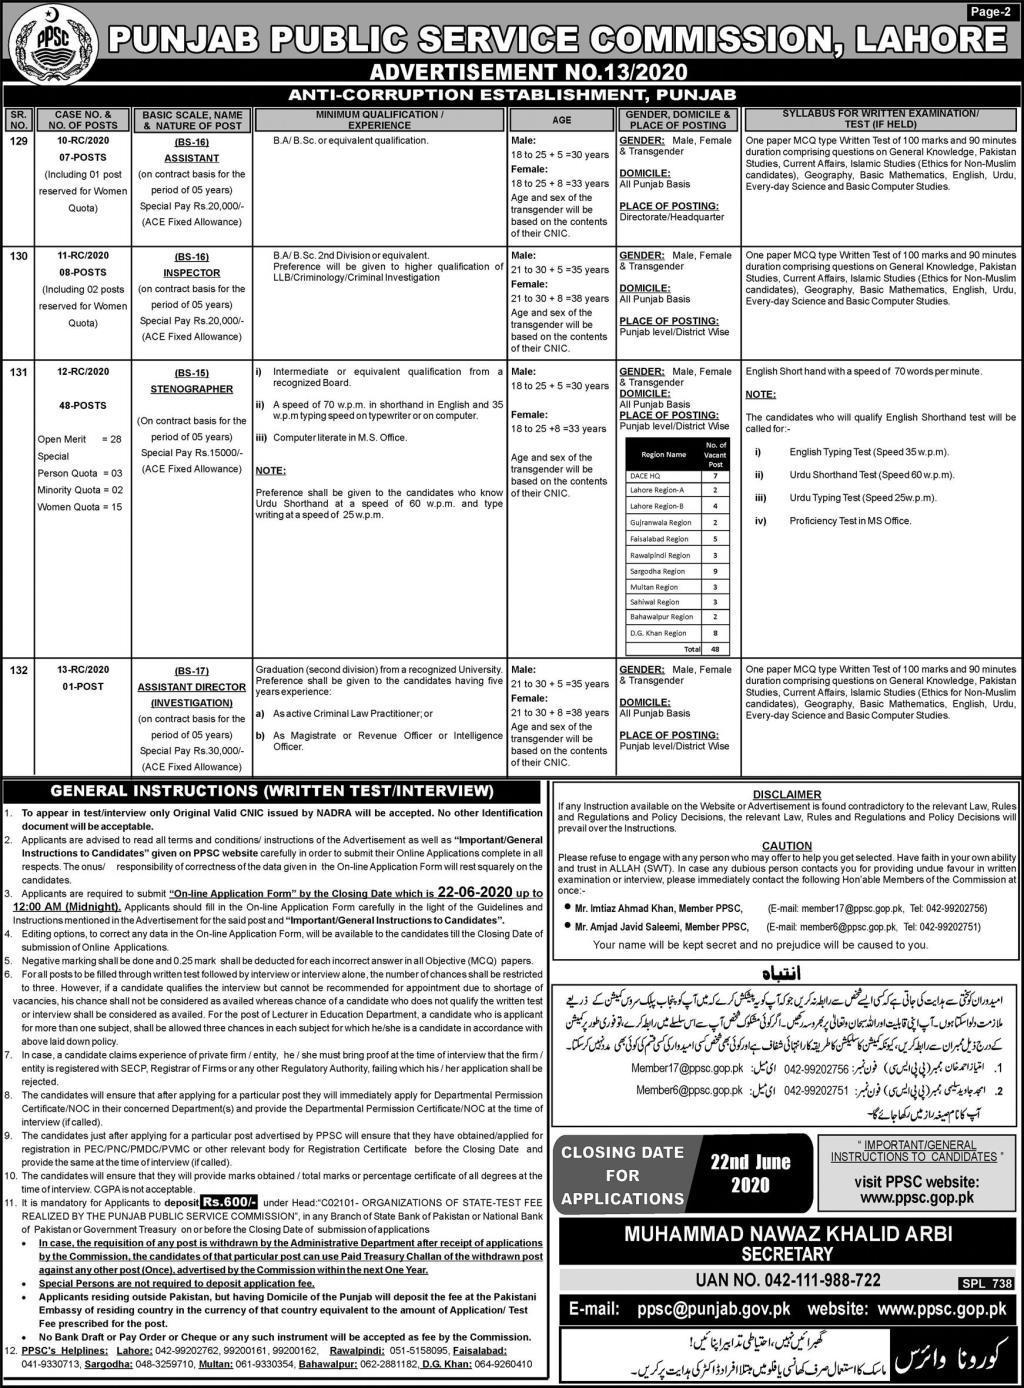 PPSC Jobs 2020 Advertisement No. 13/2020